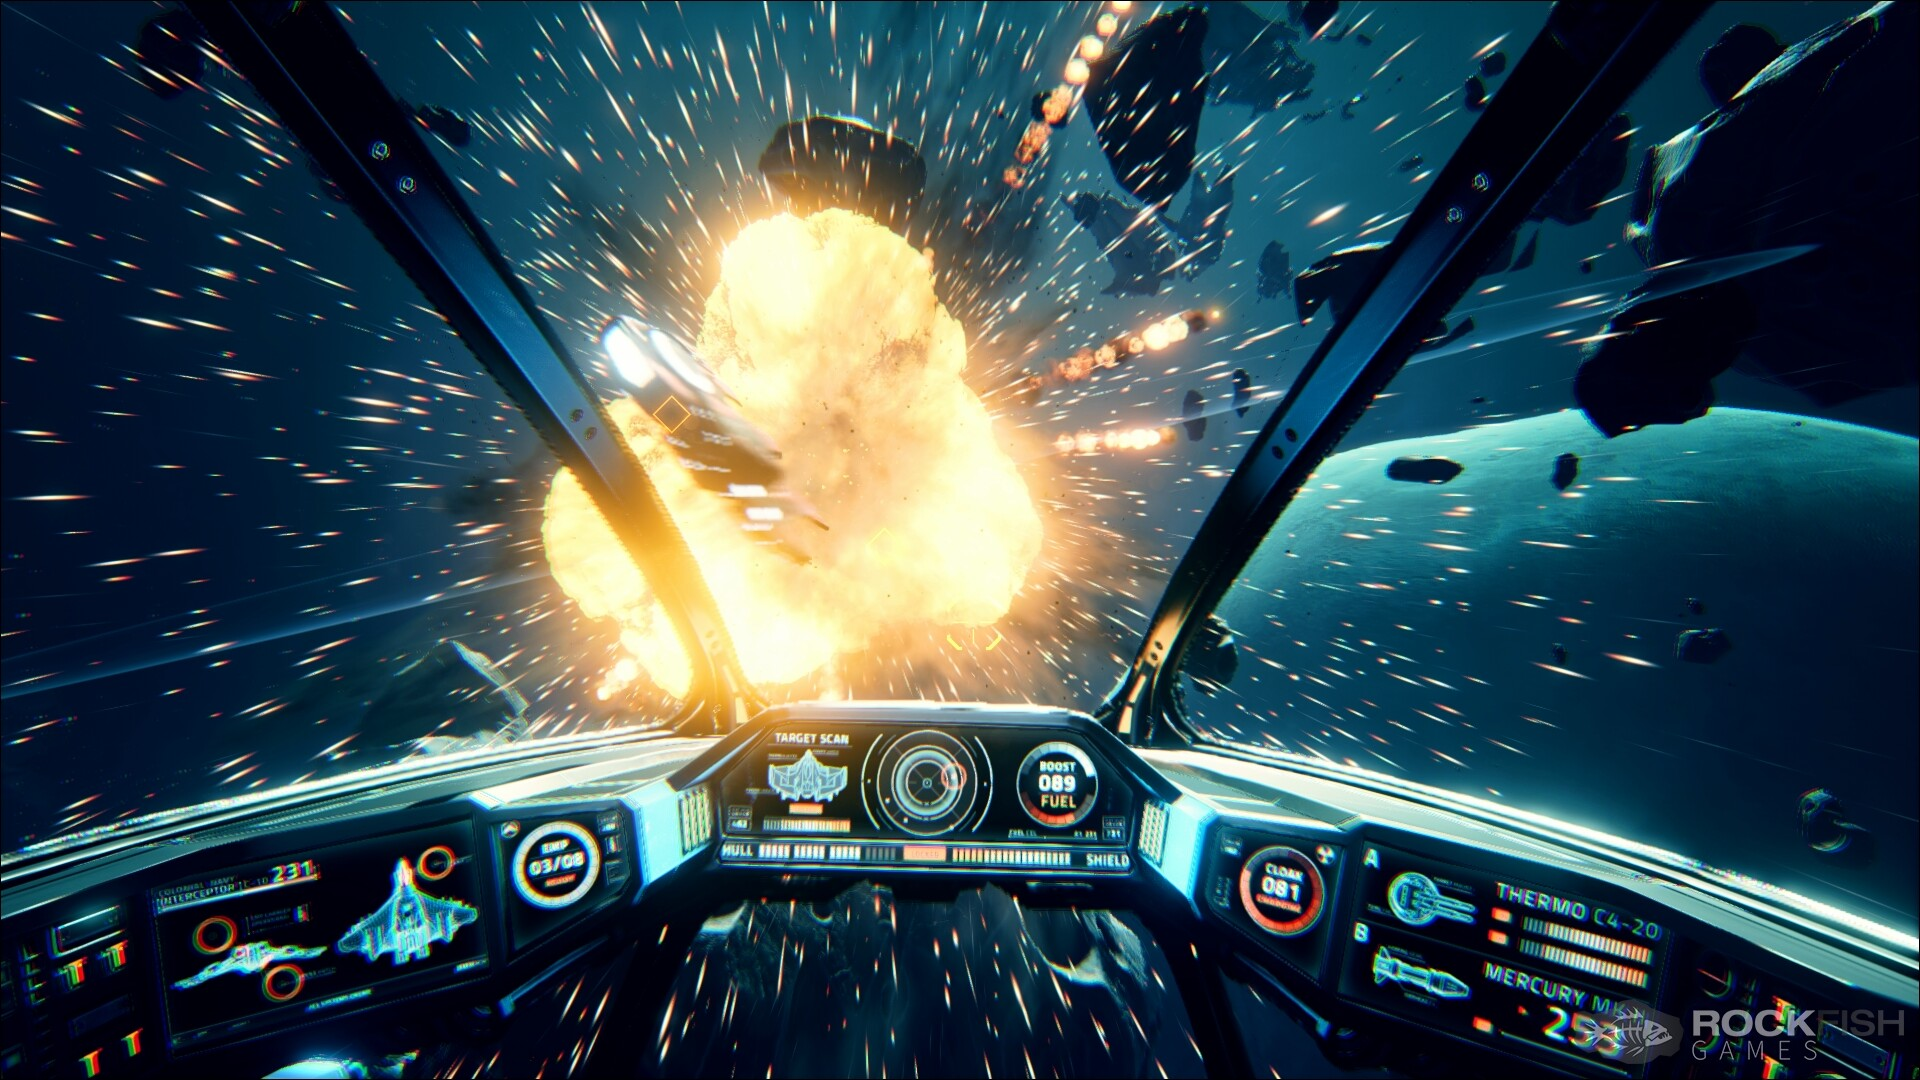 Unreal Engine 4 Space Shooter 'Everspace' 1080p Screenshots